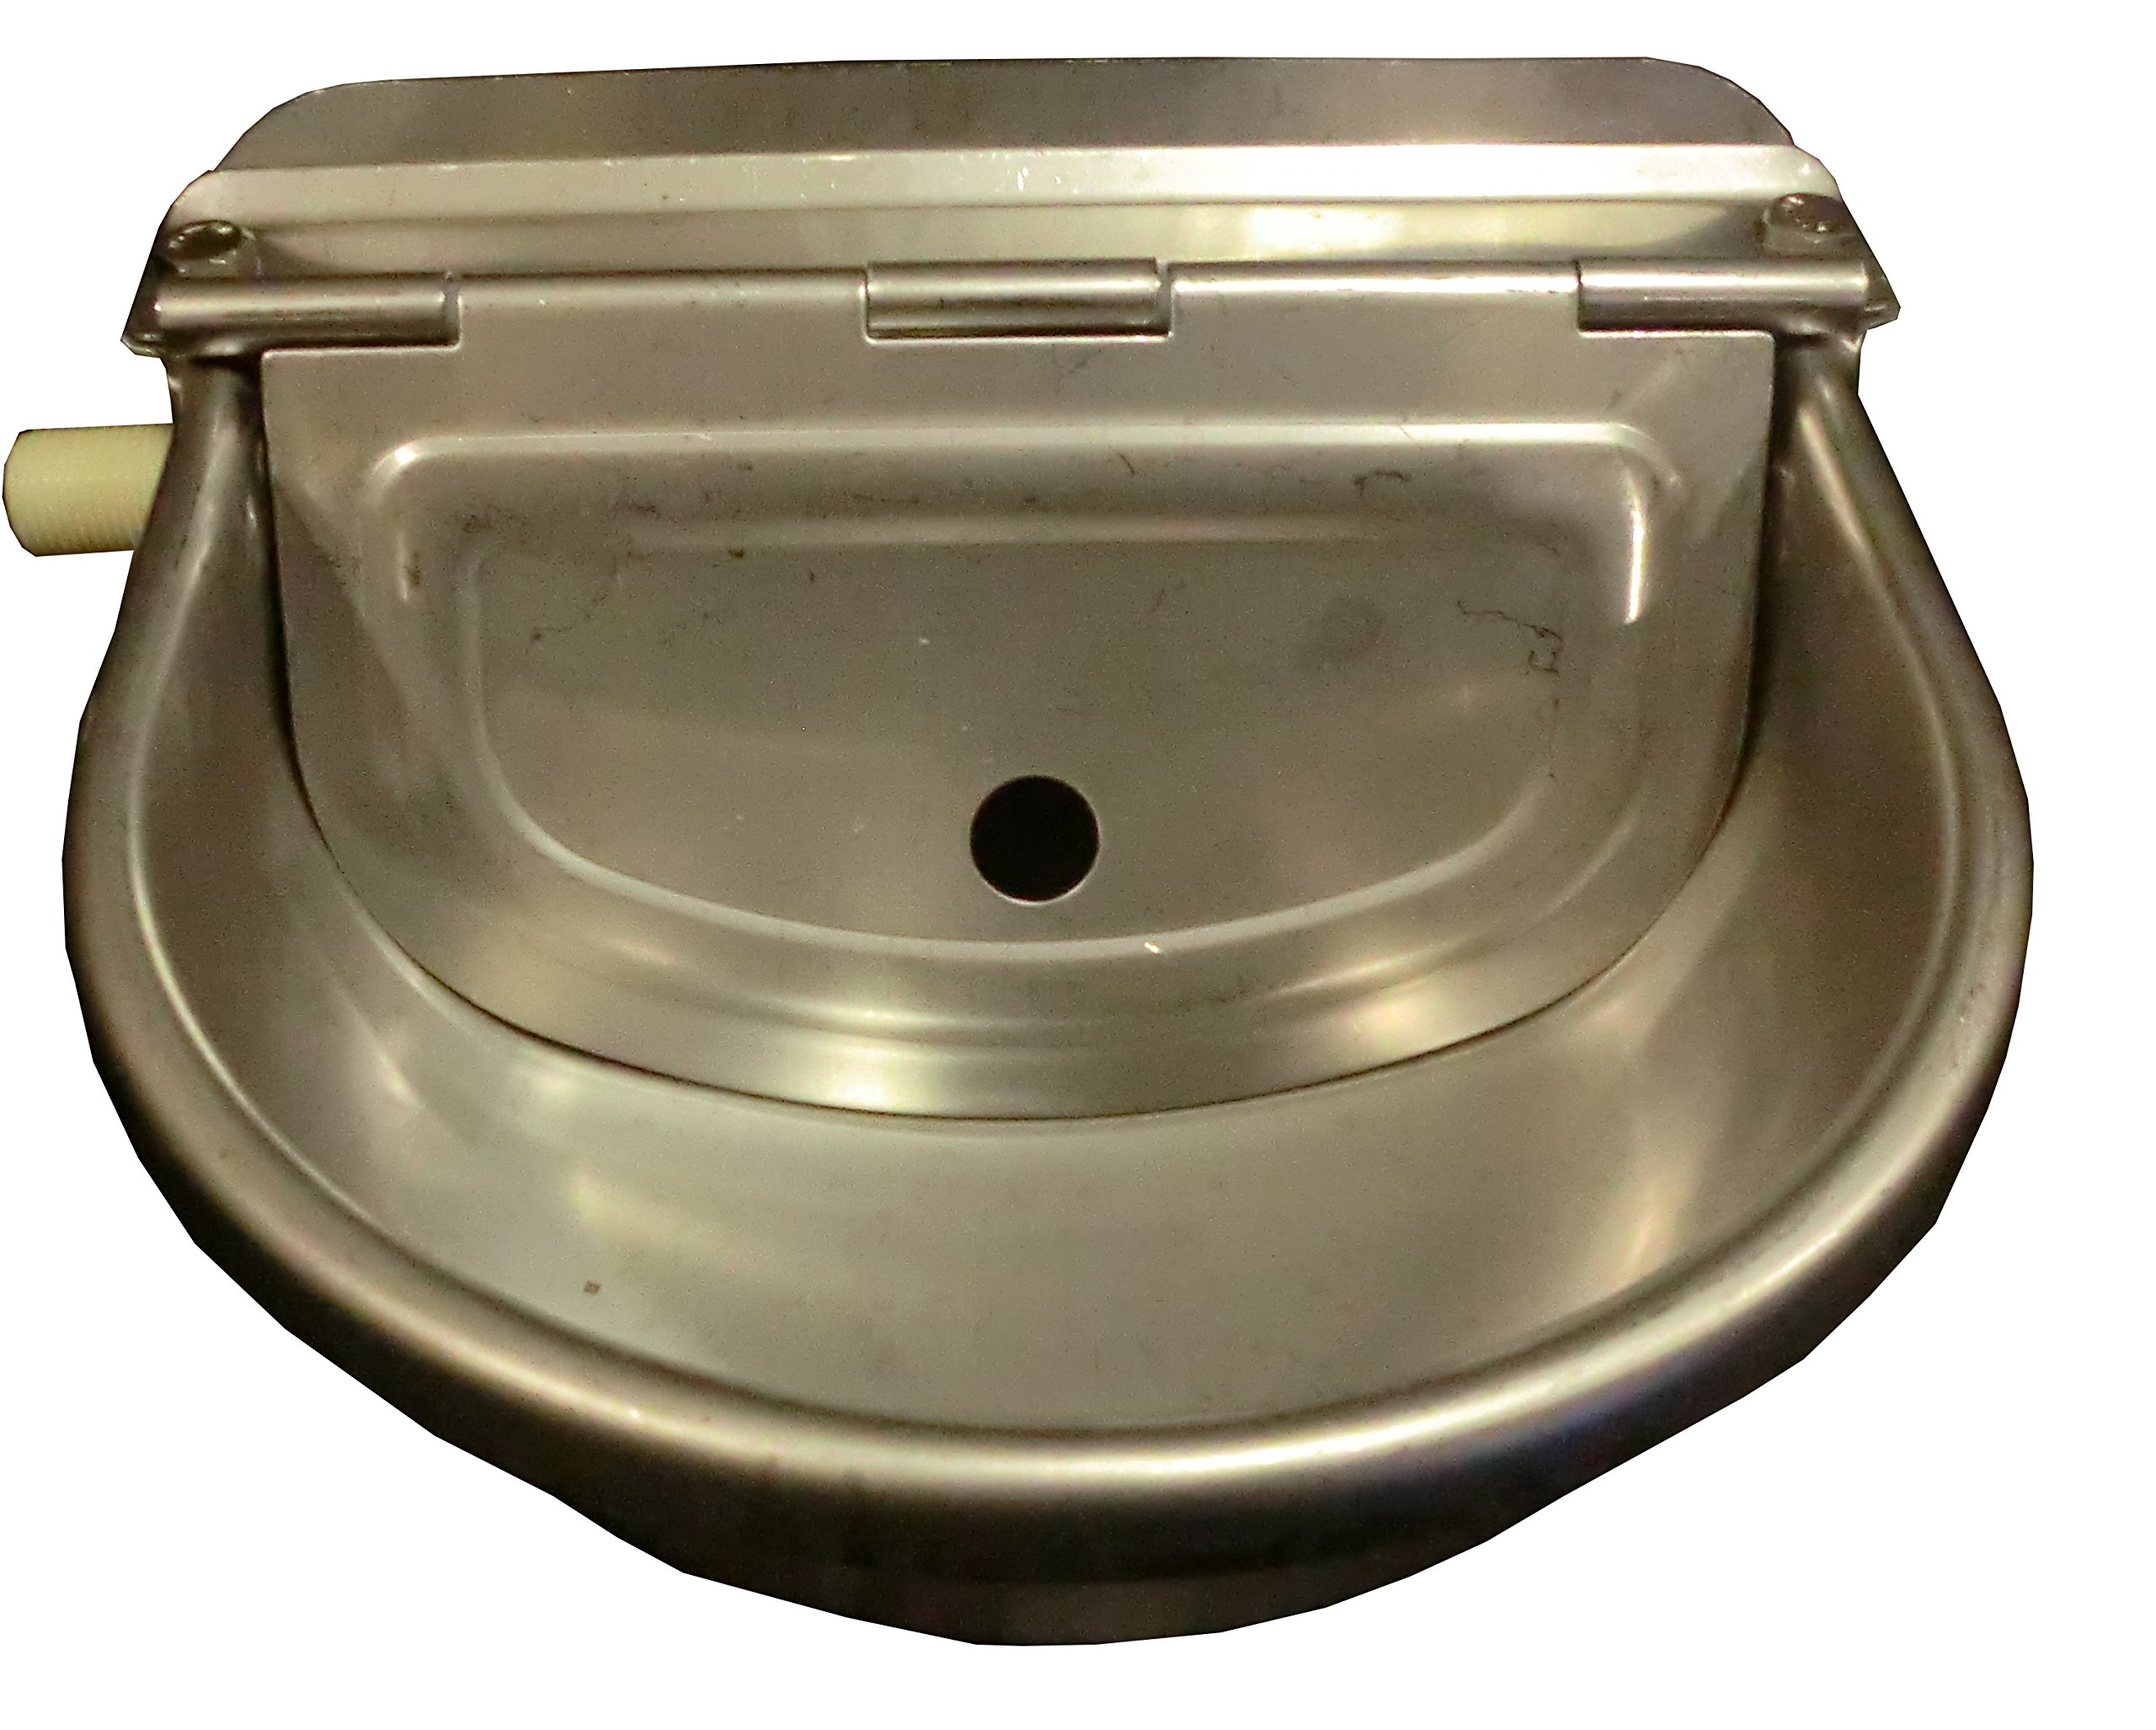 Automatic Farm Grade Stainless Stock Waterer Horse Cattle Goat Sheep Dog Water BY Rabbitnipples.com by Rabbitnipples.com